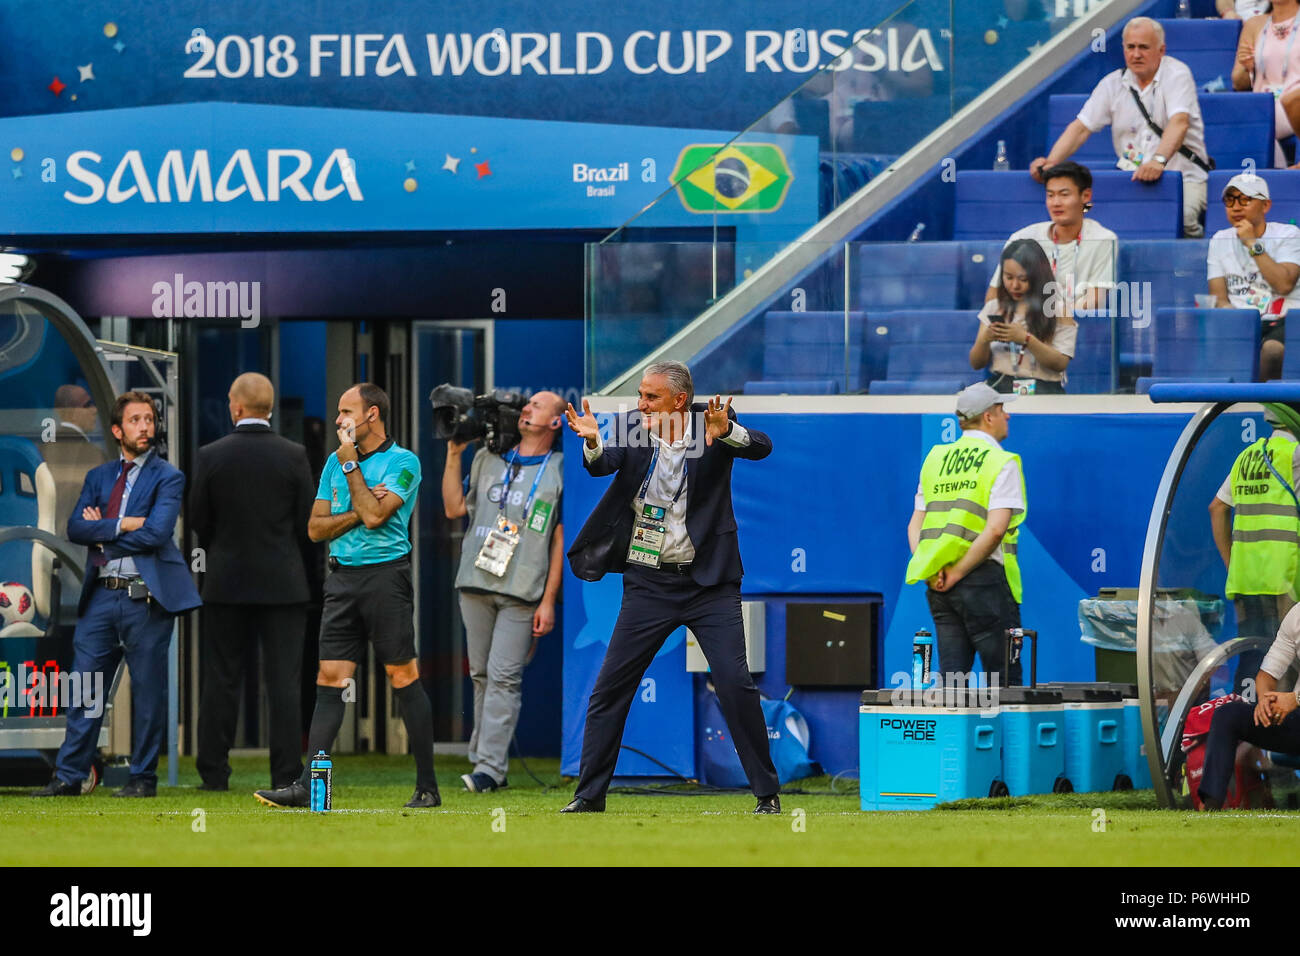 Samara, Russia. 2nd July, 2018. Tite couch of Brazil during match against Mexico game valid for the eighth round of finals of the 2014 FIFA World Cup Russia at the Samara Arena in the city of Samara in Russia this Monday, 02.  Photo William Volcov Credit: Brazil Photo Press/Alamy Live News - Stock Image